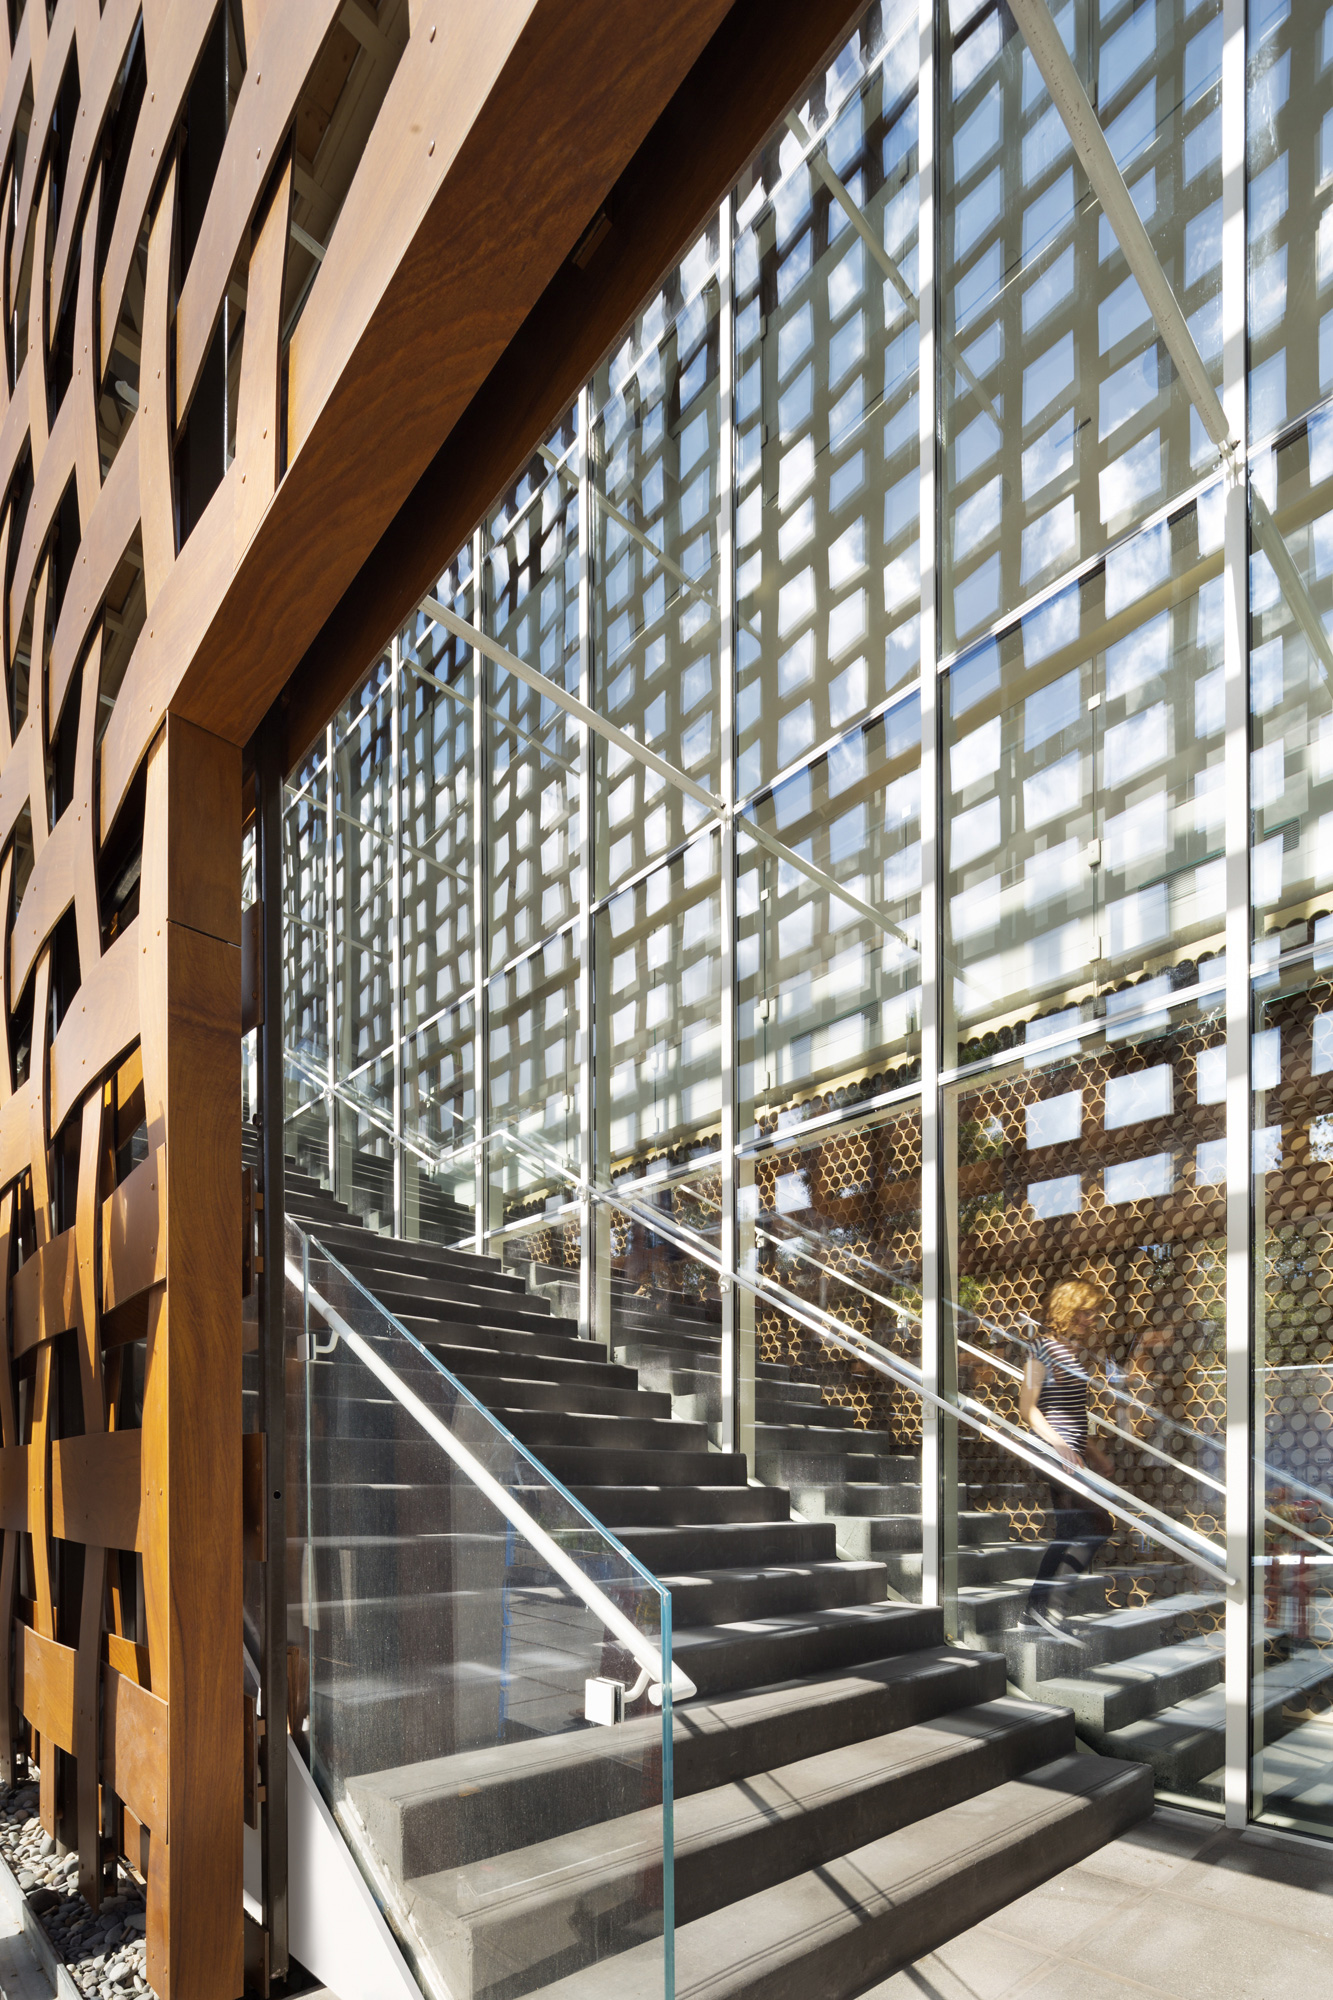 Aspen Art Museum / Shigeru Ban Architects (21)